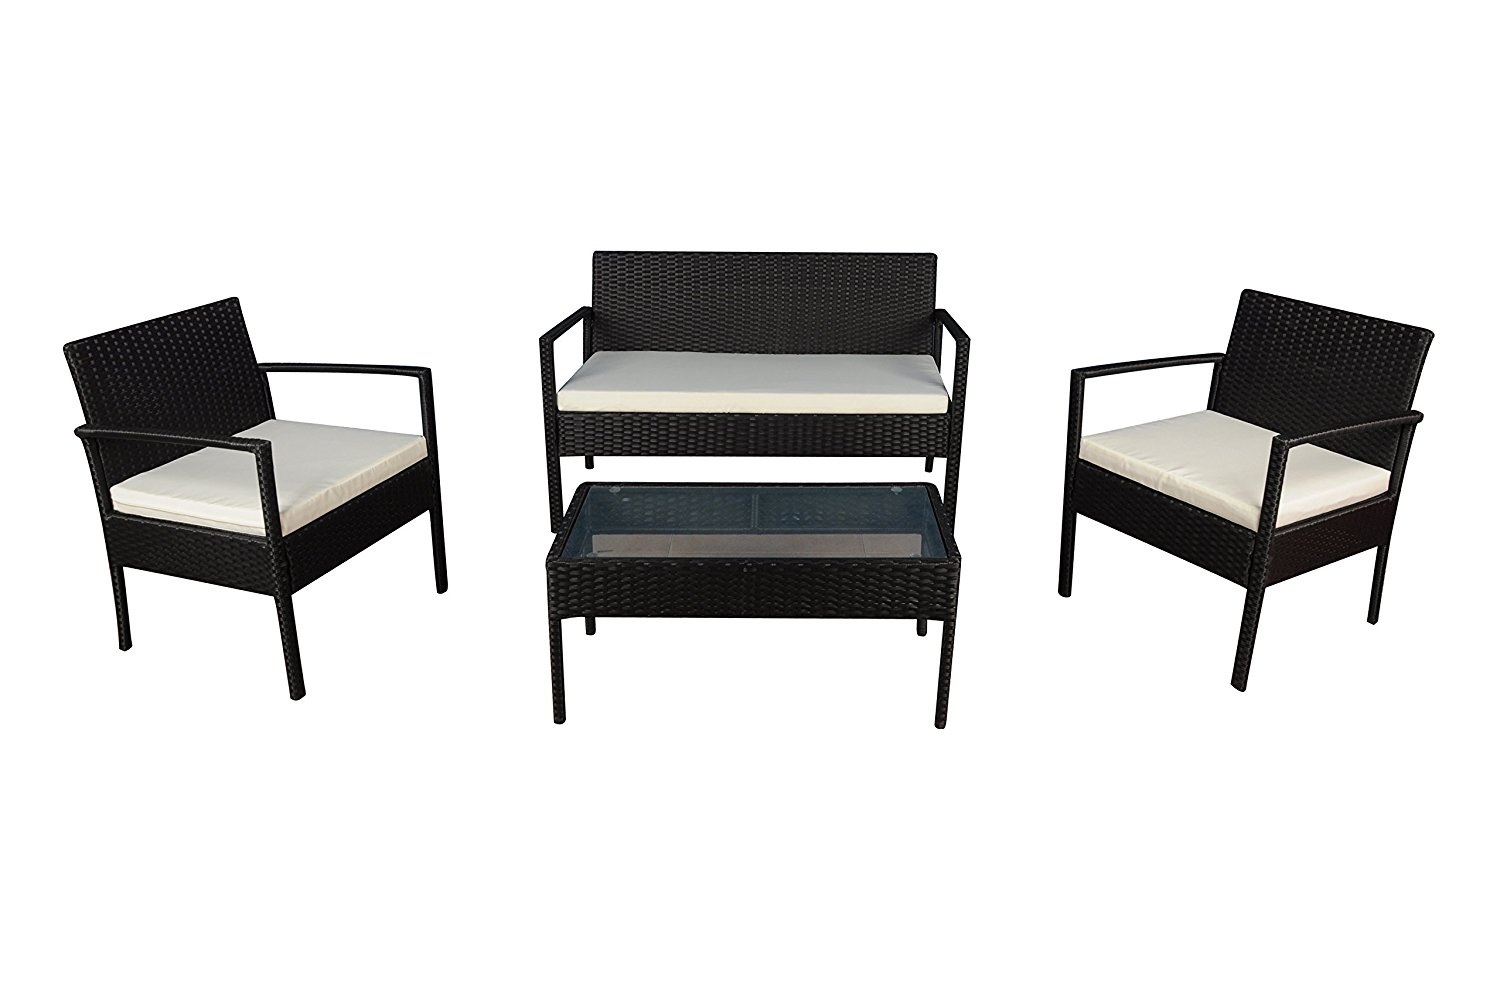 affordable modern furniture for everyone cool ideas for home 12573 | modern outdoor garden patio 4 piece set wicker sofa furniture set black ivory